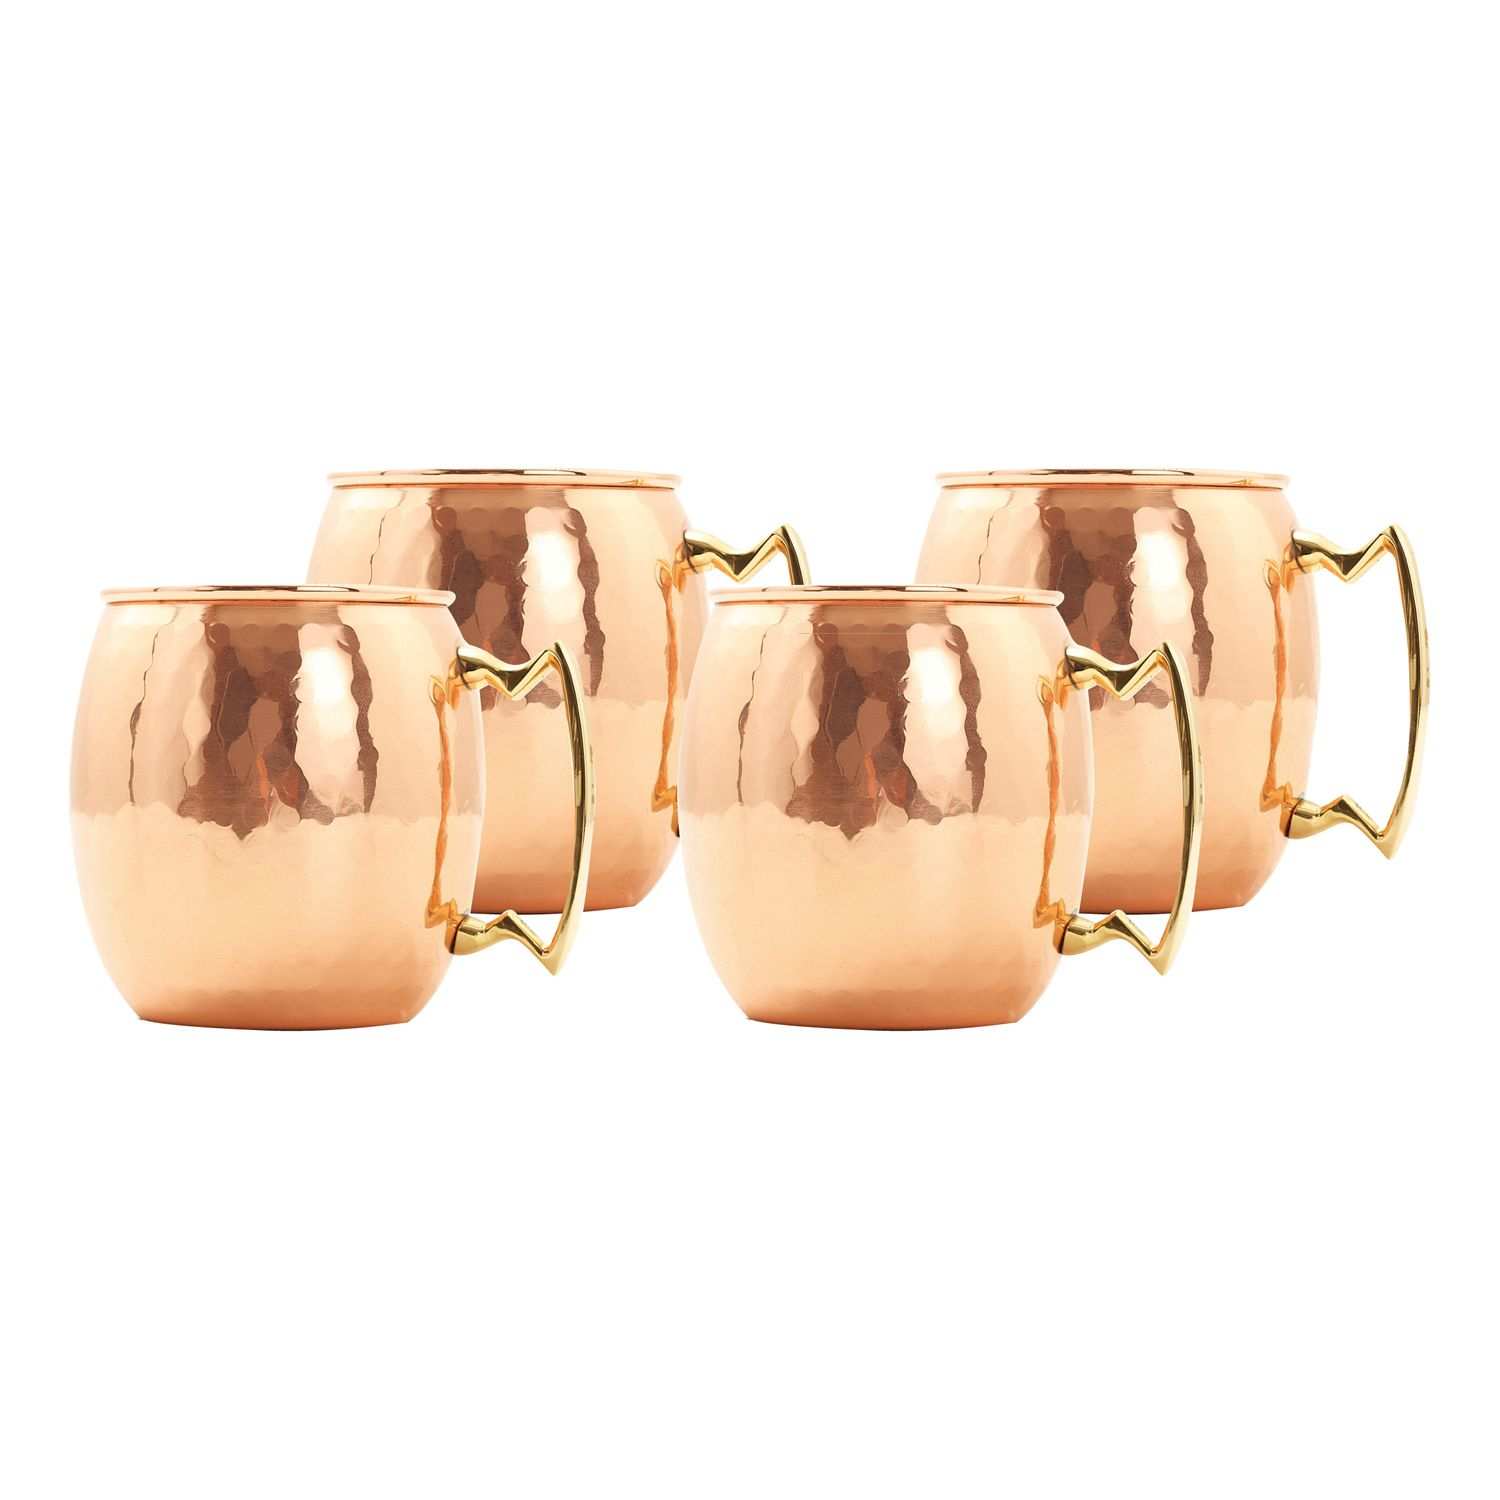 hammered copper moscow mule mug set - Copper Mule Mugs